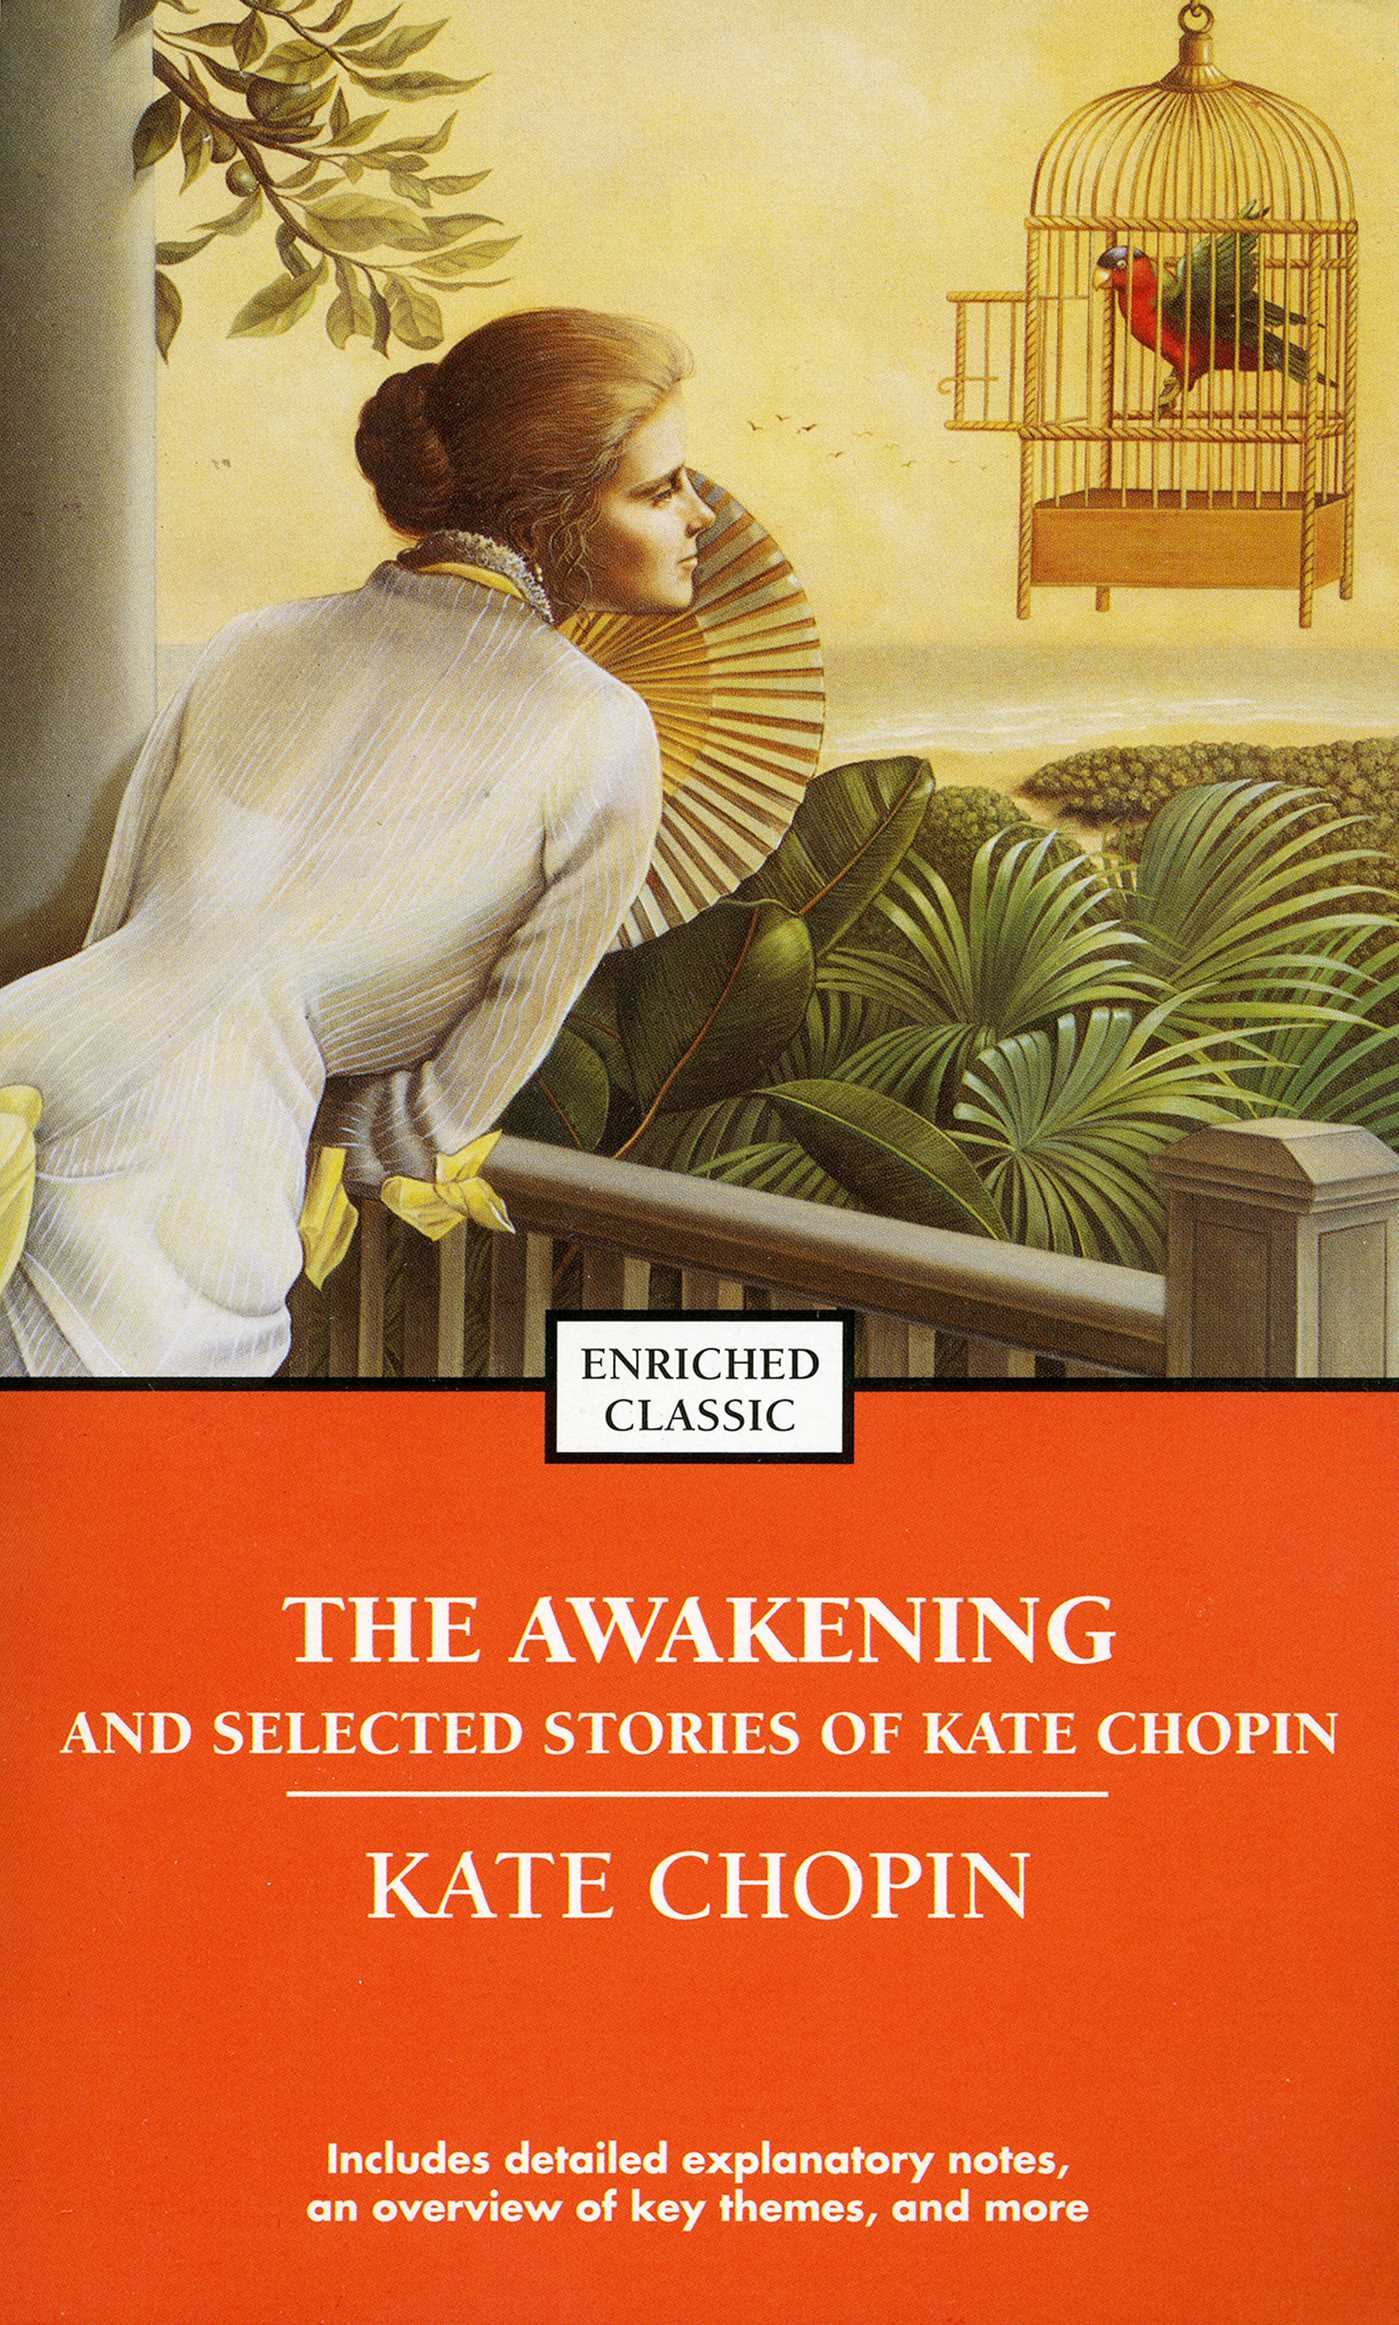 an analysis of kate chopins novel awakening Repressing the awakening is a psychoanalysis of kate chopin's novel the awakening it examines decadent, displaced, and transitory sexual repression in the characters complete with quotes the awakening by kate chopin, psychoanalysis introduces a significant revelation in regards to the novel's edna mrs.